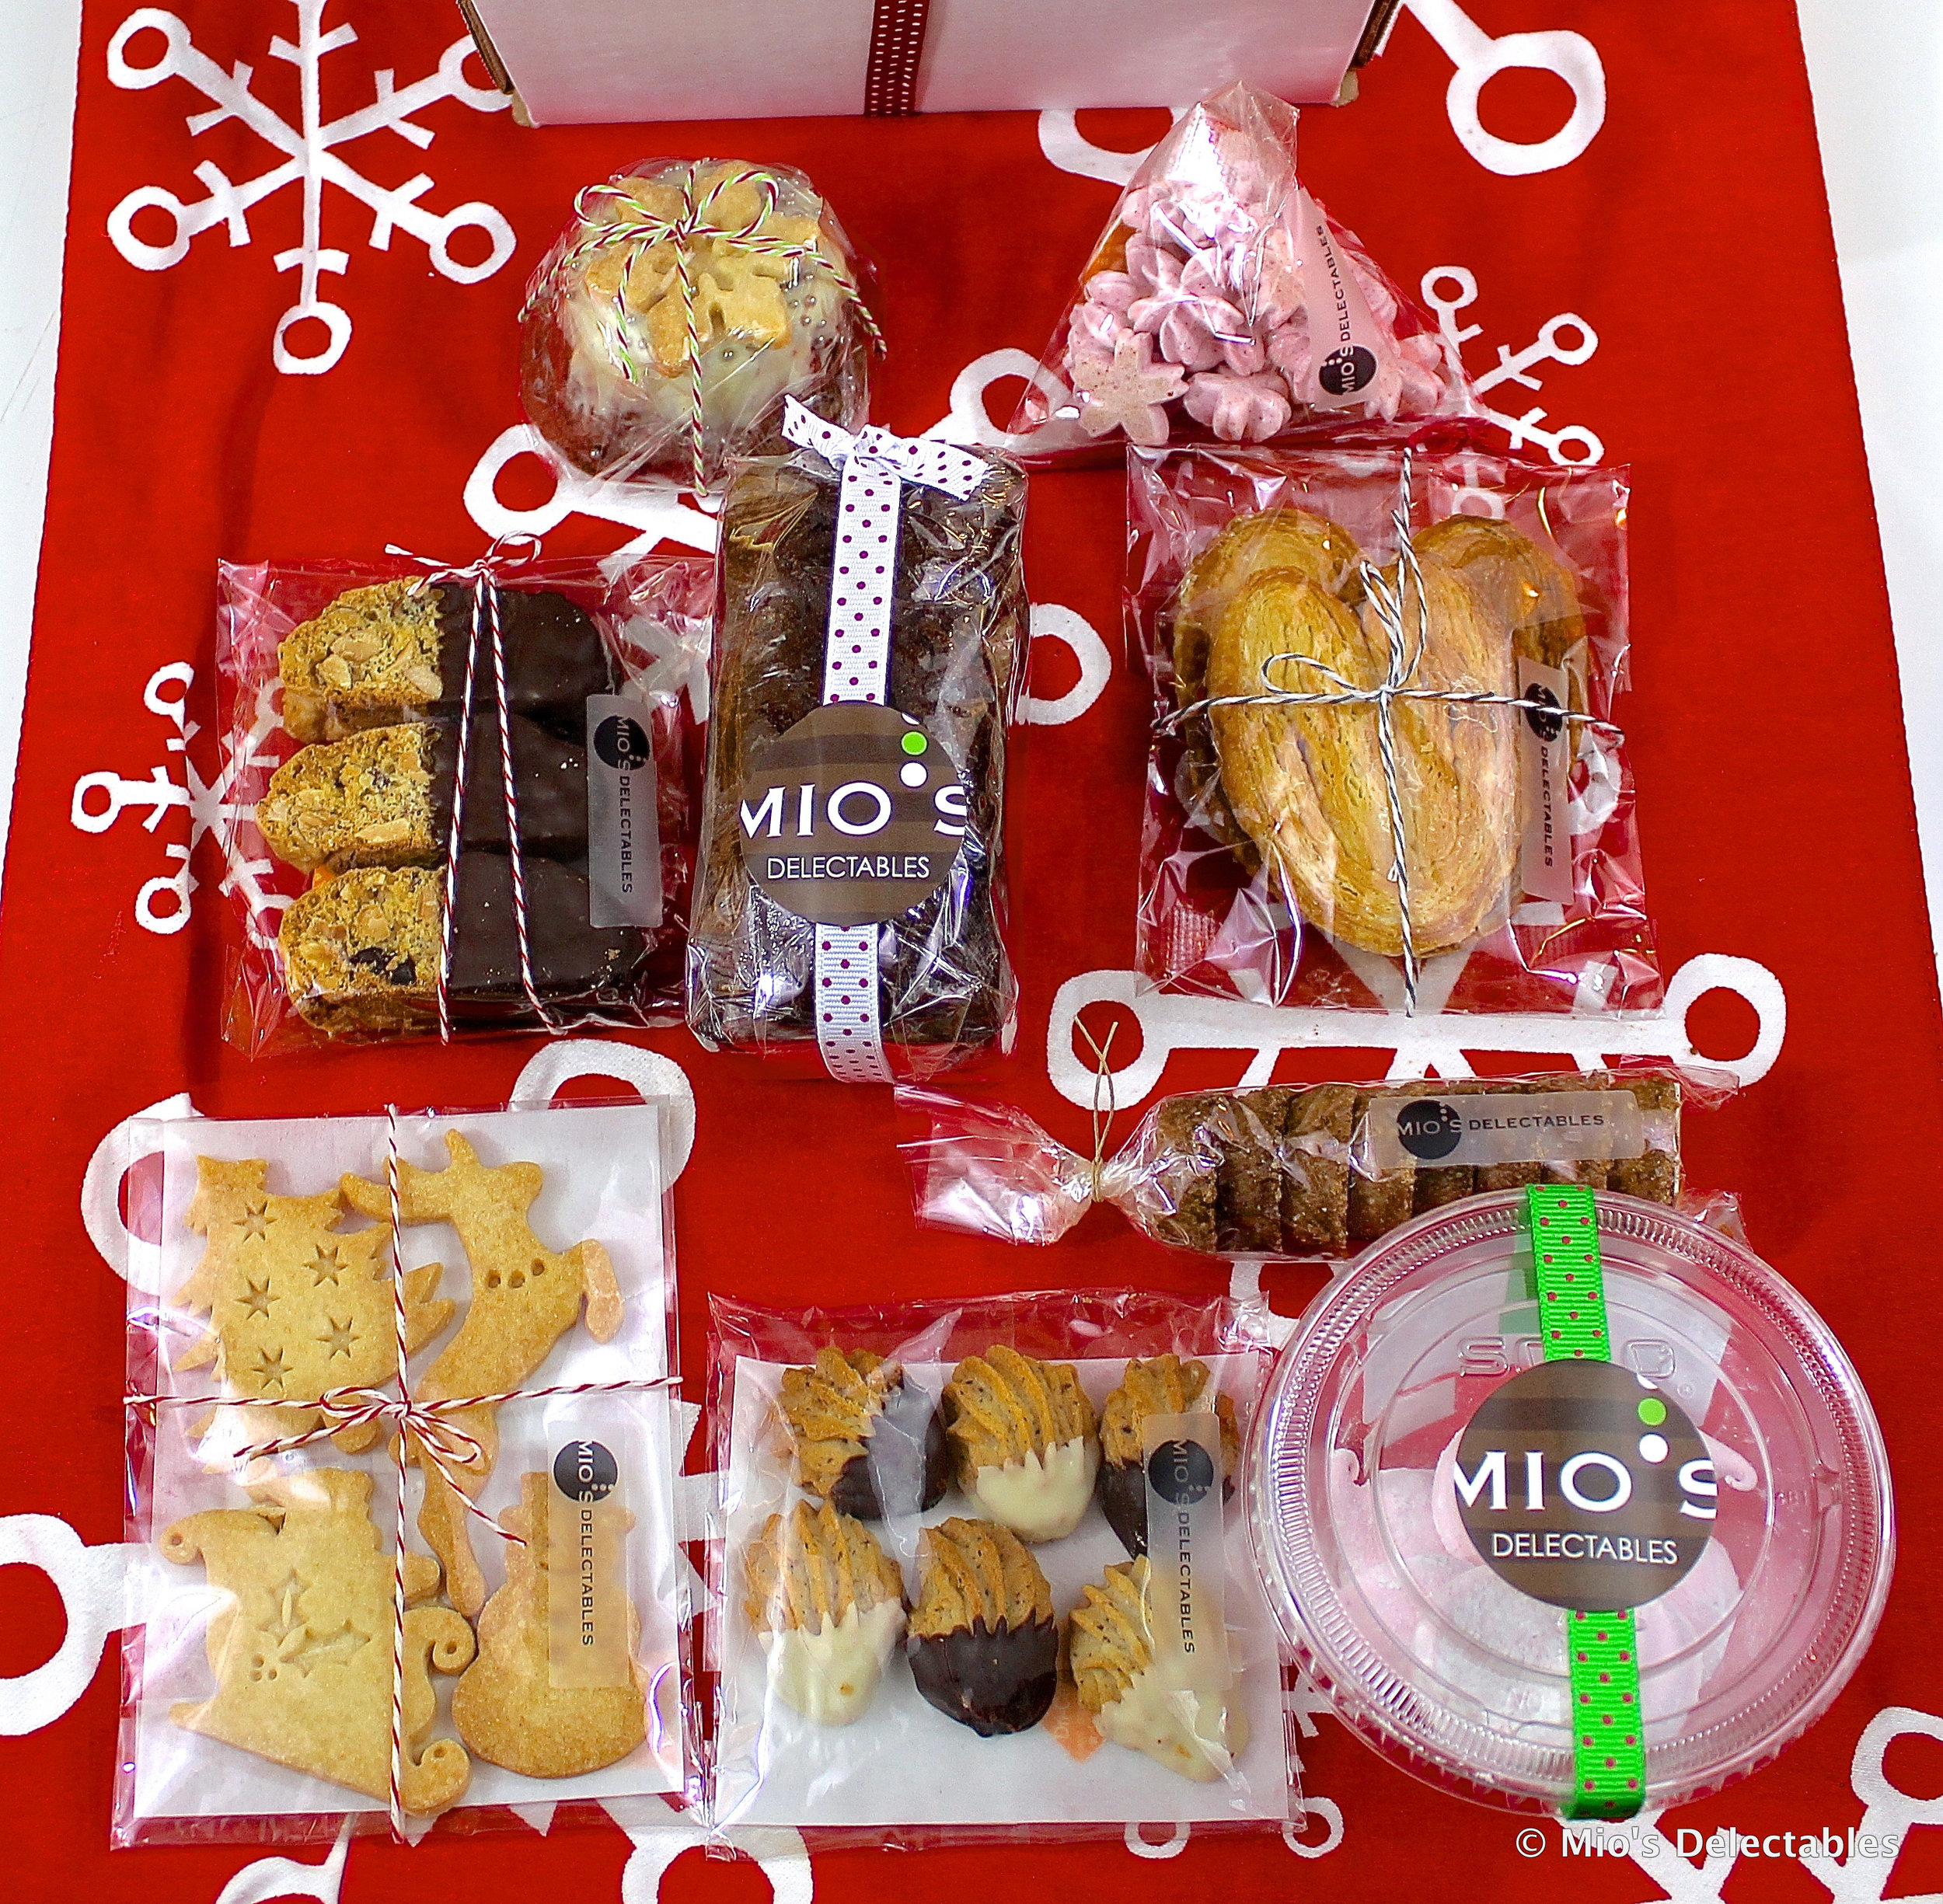 SOLD OUT  *Holiday Special Gift Box $29.75  Mulberry Salted Chocolate Ginger & Cranberry Pound Cake x1   Chocolate Dipped Cranberry Biscotti x3  Hazelnut Chocolate Shell Cookies x6  Palmier x2  Mio's Delectables Signature Holiday Spiced Shortbread Cookies x1  Christmas Butter Cookies x1  Petite Gâteau Au Chocolat w/ White Chocolate x1  Red Currant Guimauvex1  Cranberry Meringue Cookies x1    https://www.miosdelectables.com/christmas-cake-preorder/mios-delectables-2018-holiday-gift-box